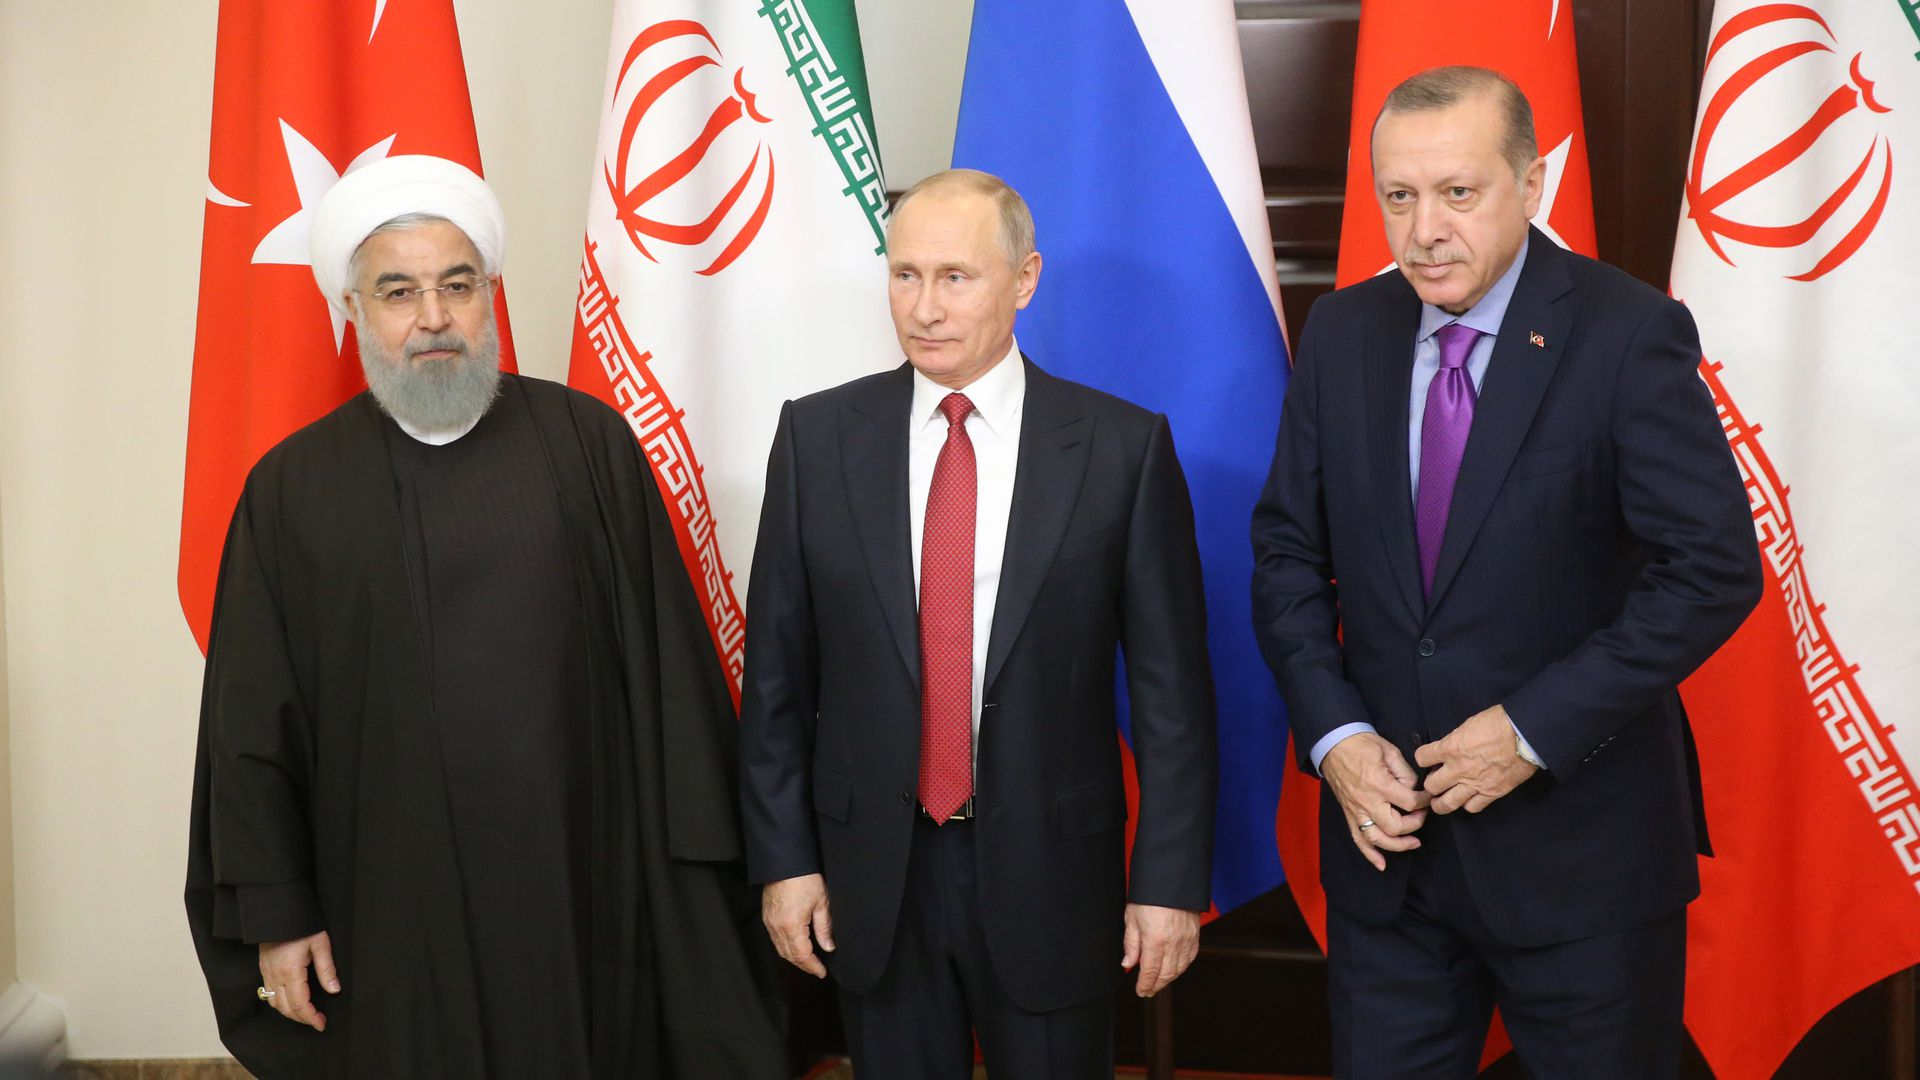 Rouhani, Putin, and Erdogan standing in front of national flags